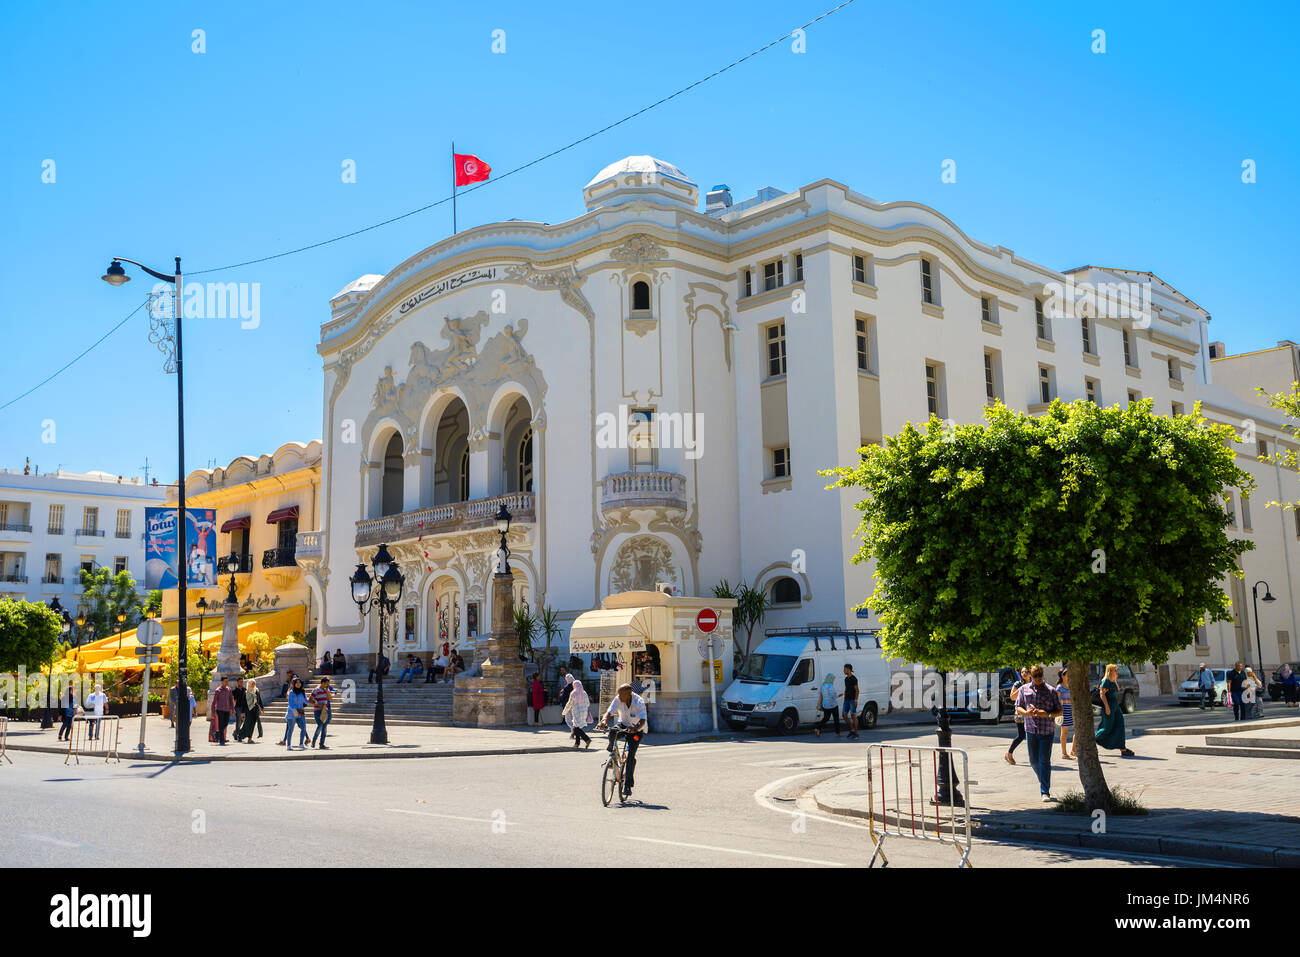 Tunisian National Theatre in center on avenue Habib Bourguiba. Tunisia,Tunis, North Africa - Stock Image